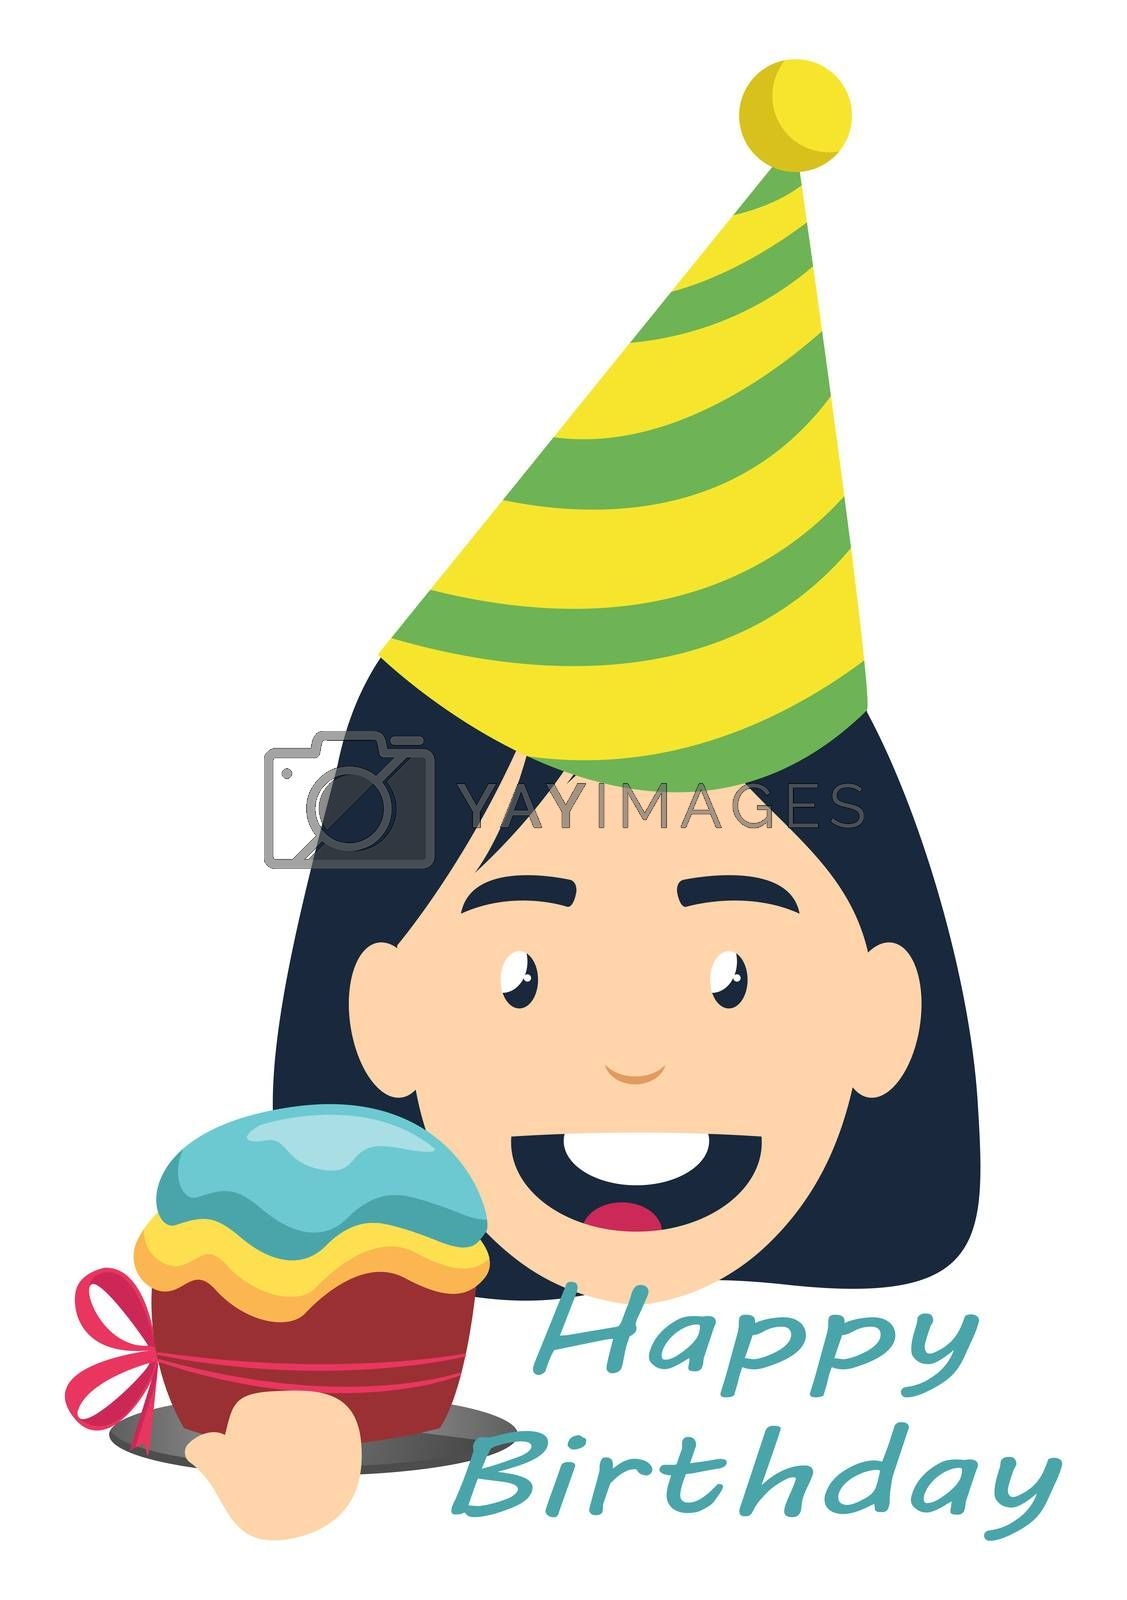 Girl on birthday party, illustration, vector on white background